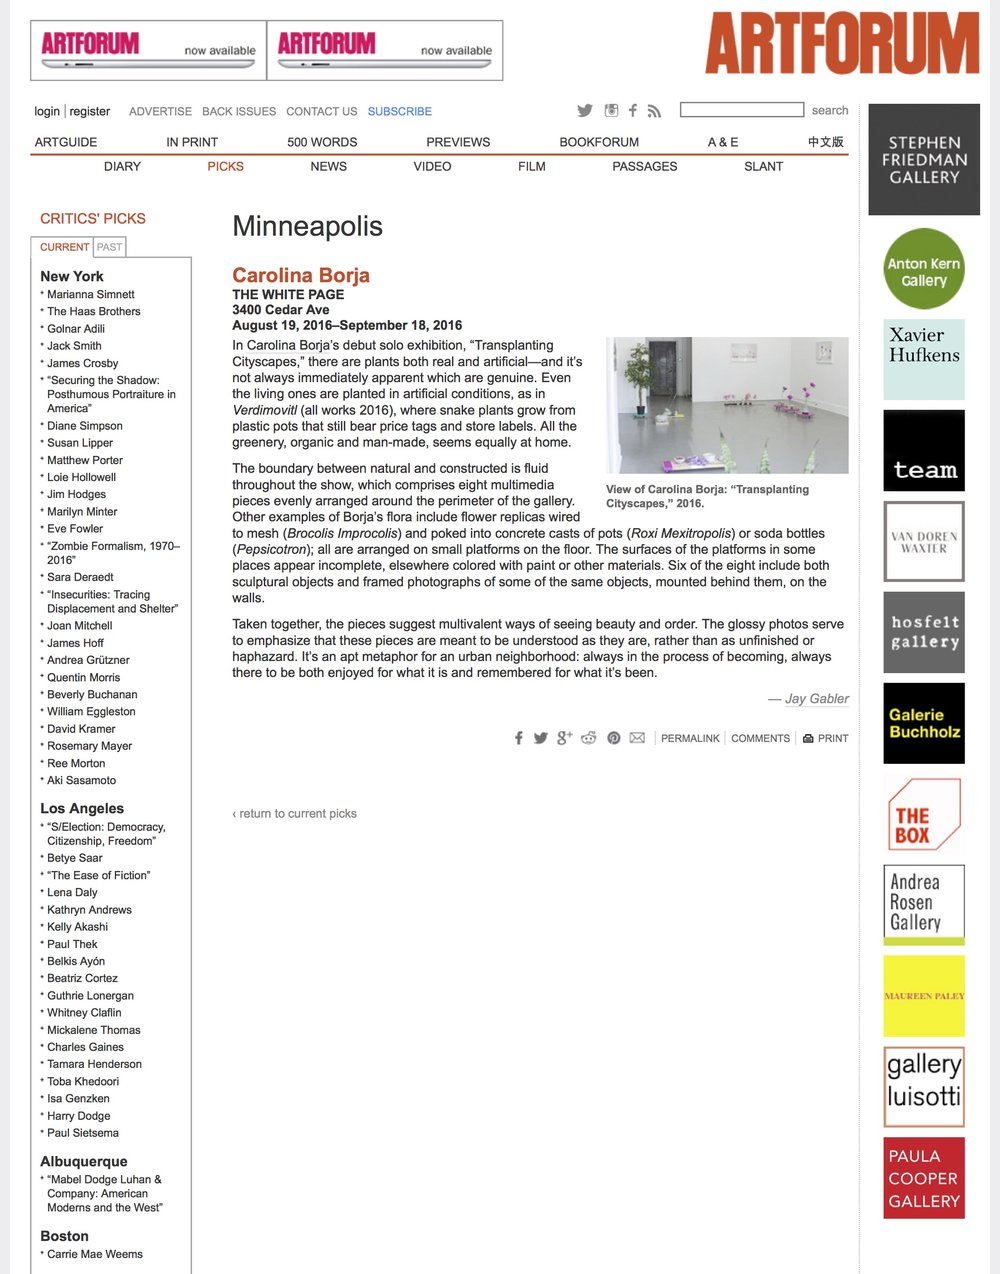 Carolina Borja at THE WHITE PAGE - artforum.com : critics' picks.jpg